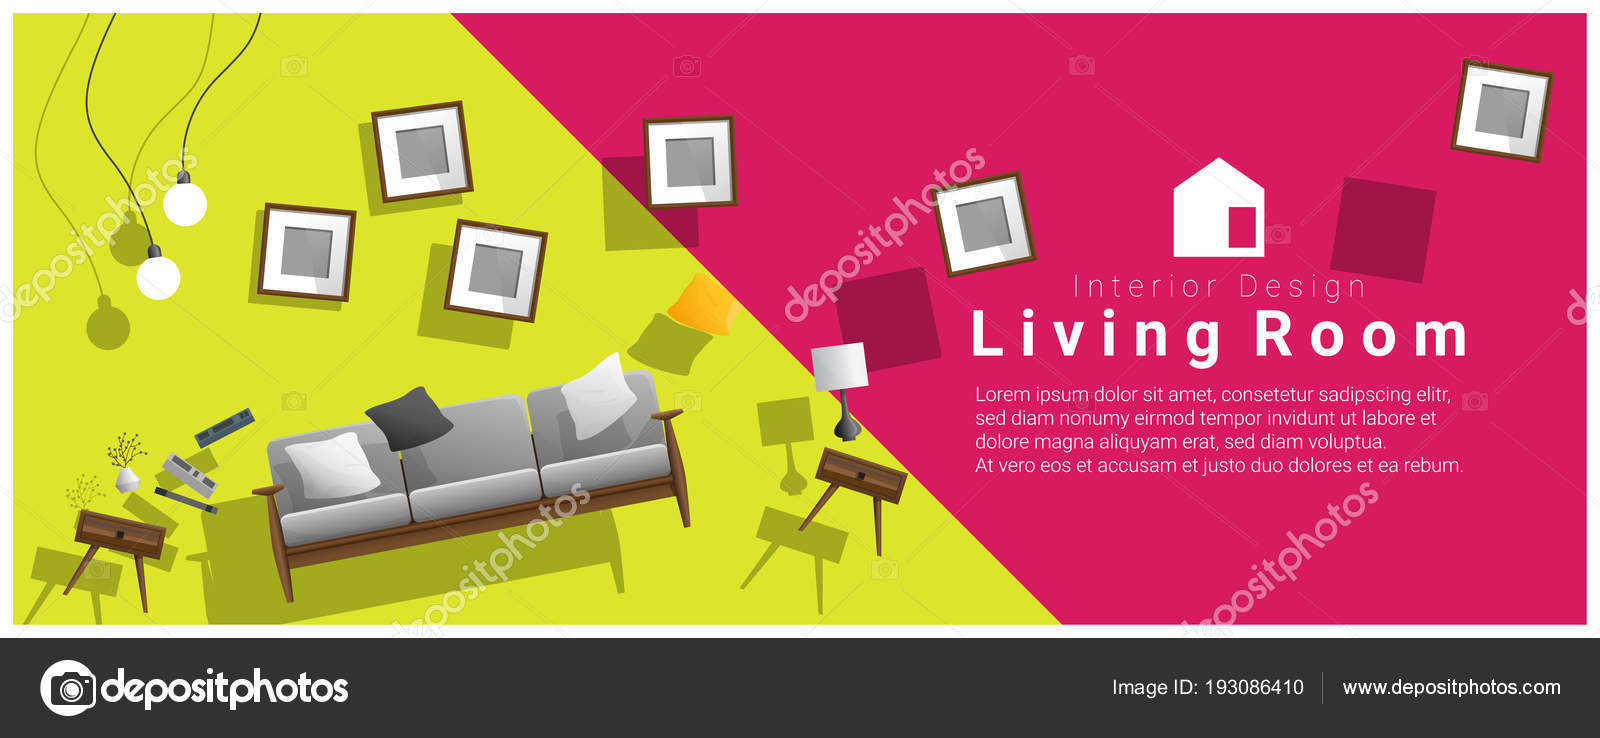 cheapest living room furniture best wallpapers horizontal interior banner sale hovering colorful background stock vector